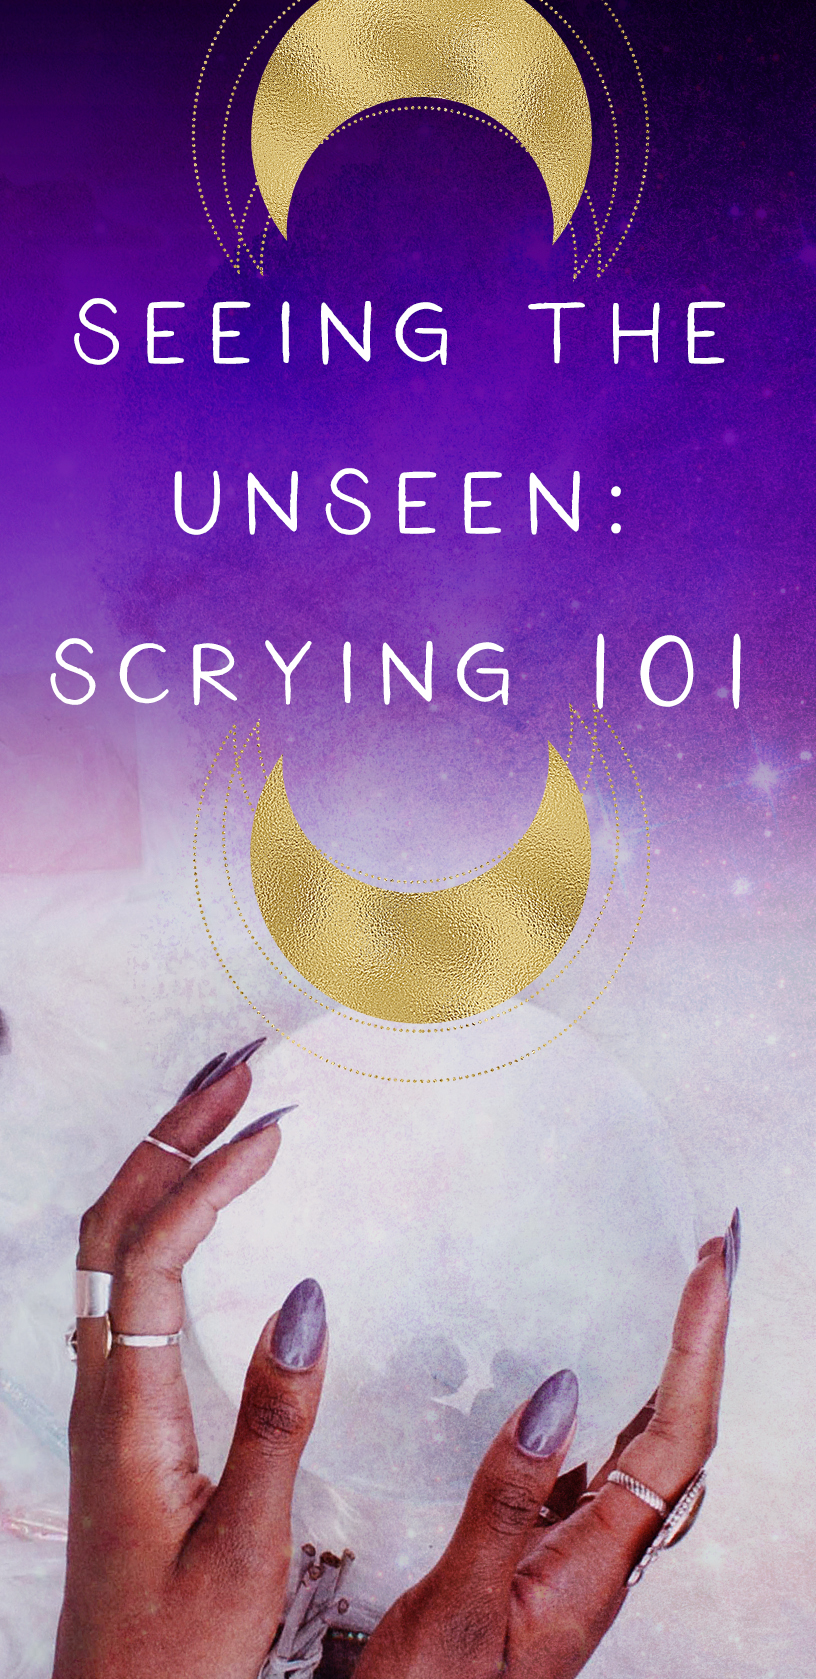 how to scry scrying with water scrying 101